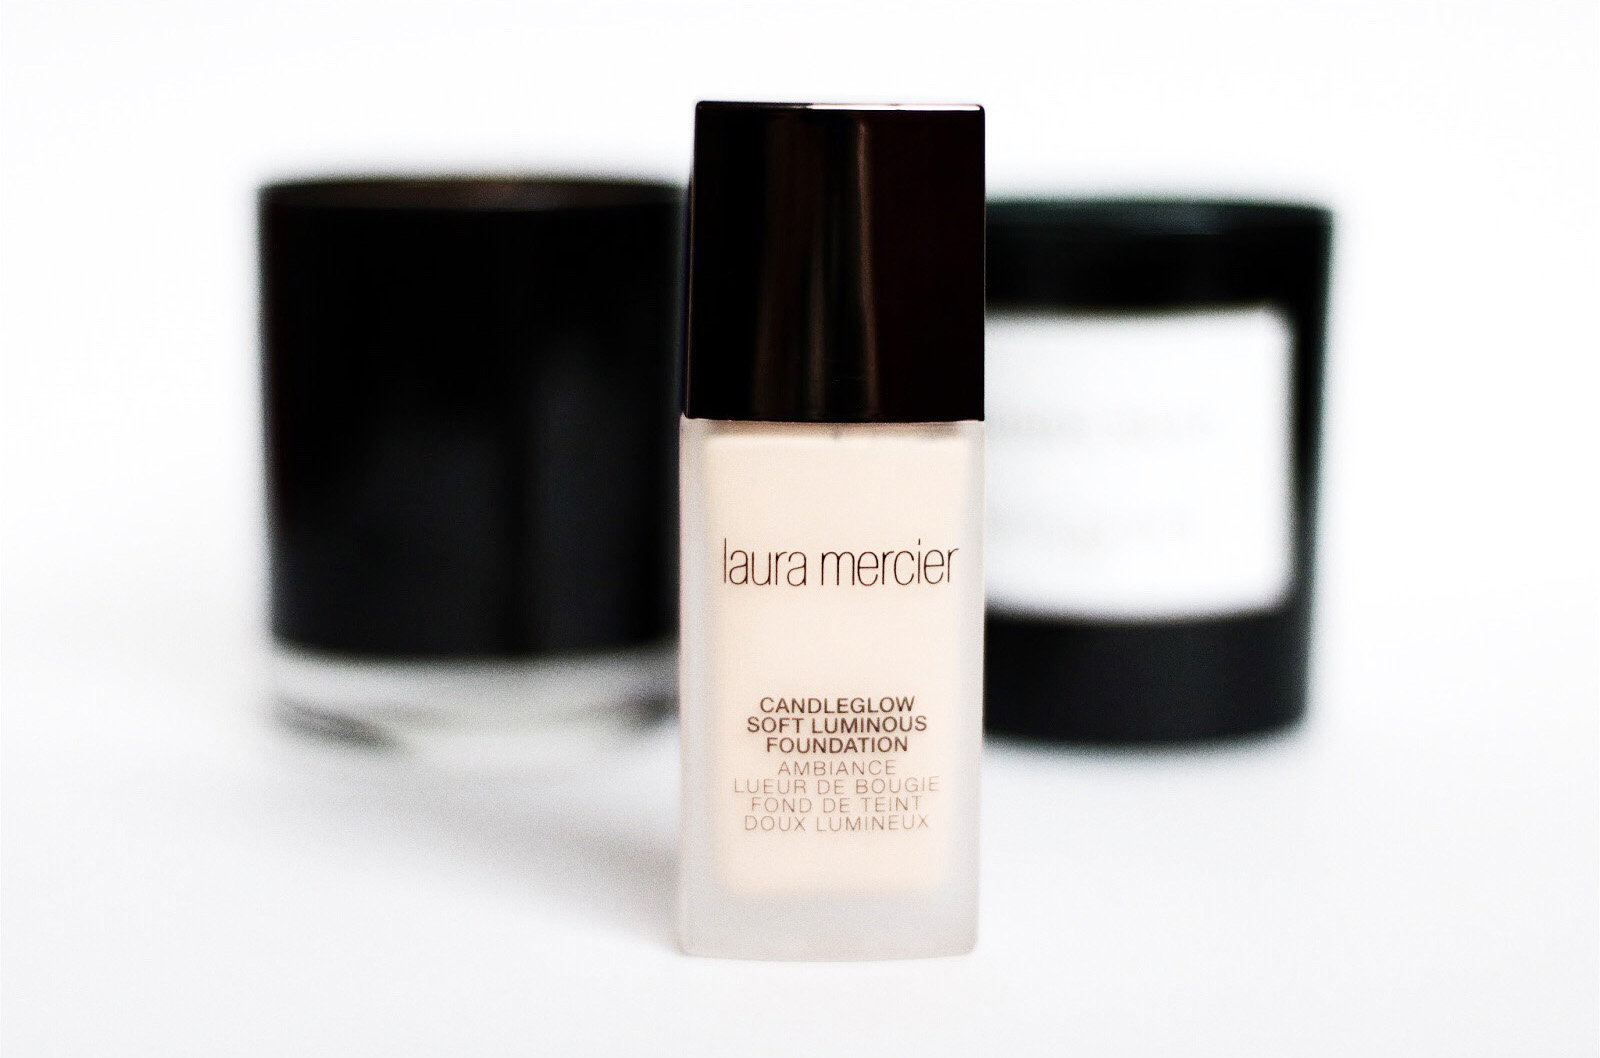 laura mercier candleglow foundation fond de teint avis test